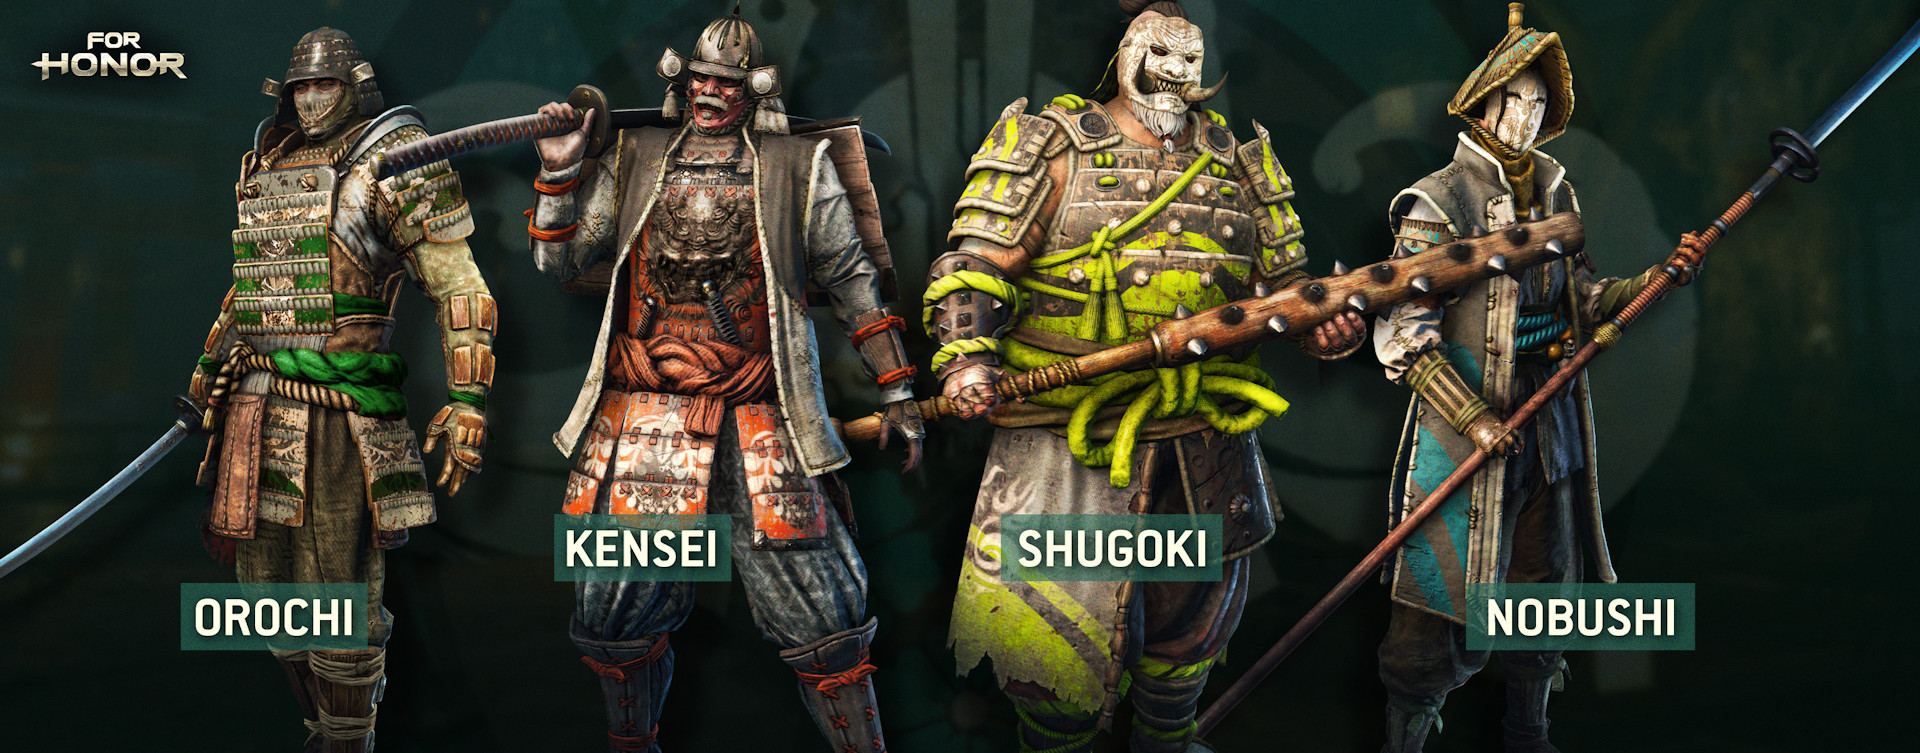 for honor game - photo #15